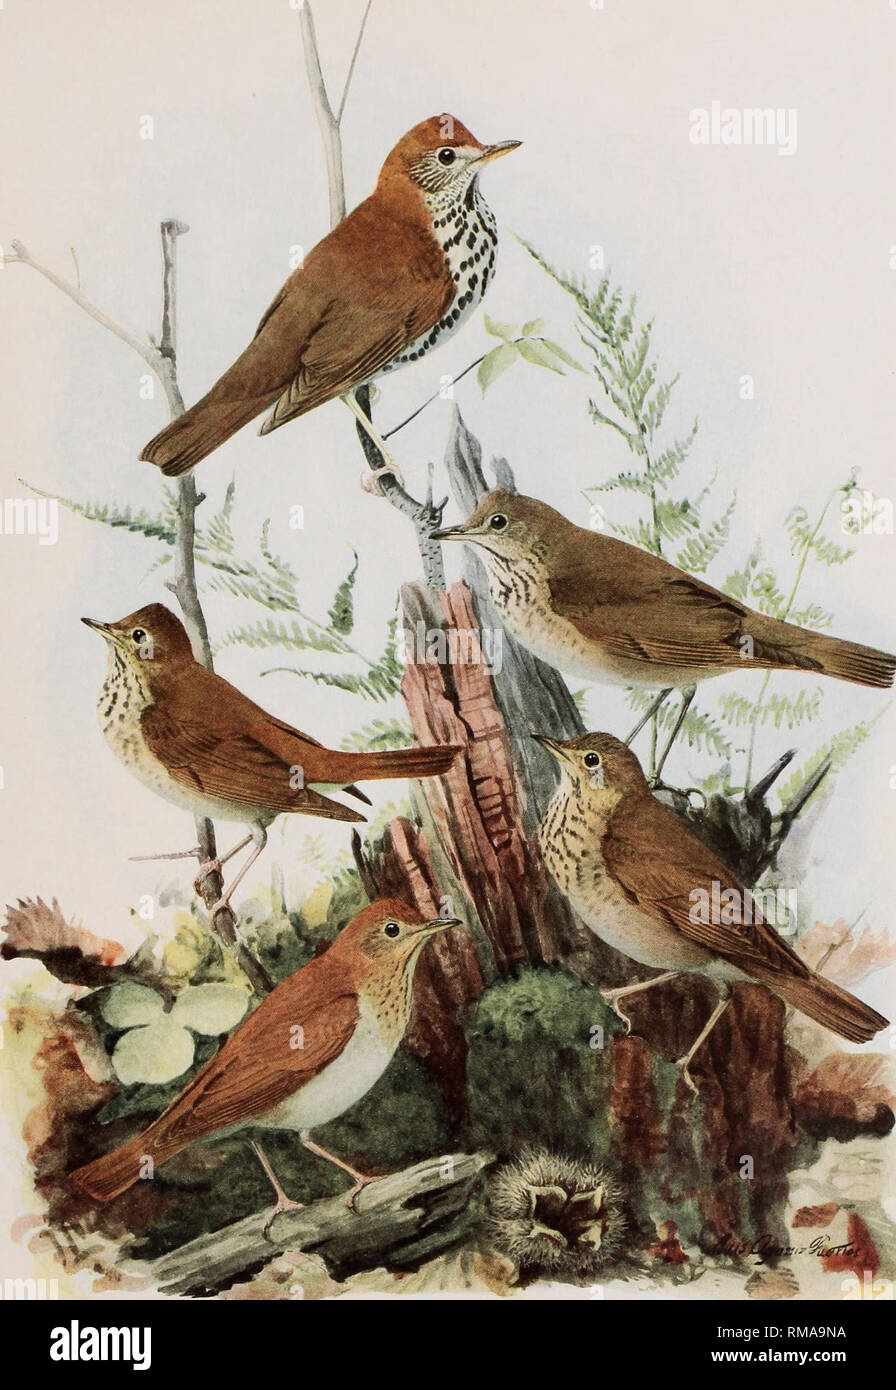 . Annual report. New York State Museum; Science; Science. BIRDS OF NEW YORK Memoir 12. N. Y. State Museum Plate 105.  -... WOOD THRUSH Hylocichla nustelina (Gmelin) HERMIT THRUSH GRAY-CHEEKED THRUSH Hylocichla guttata pallasi (Cabanis) Hylocichla aliciae ahciae (Baird) VEERY OLIVE-BACKED THRUSH Hylocichla fuscescens fuscescens (Stephens) Hylocichla ustulata swamsoni (Tschudi) All j nat. size. Please note that these images are extracted from scanned page images that may have been digitally enhanced for readability - coloration and appearance of these illustrations may not perfectly resemble th Stock Photo